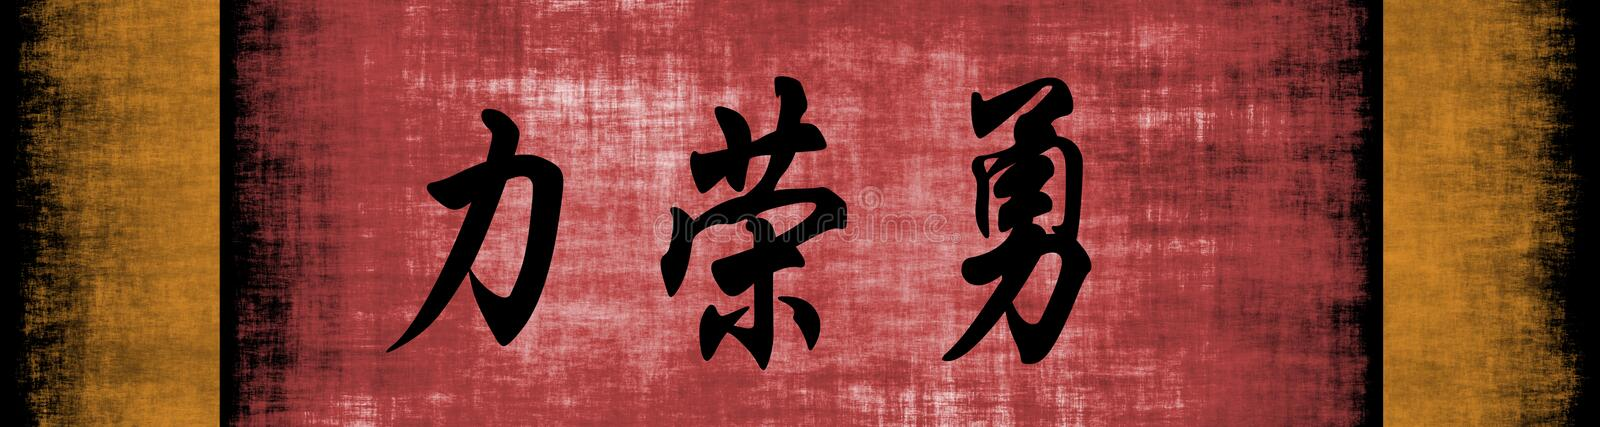 Download Strength Honor Courage Chinese Motivational Phrase Stock Illustration - Image: 8640863